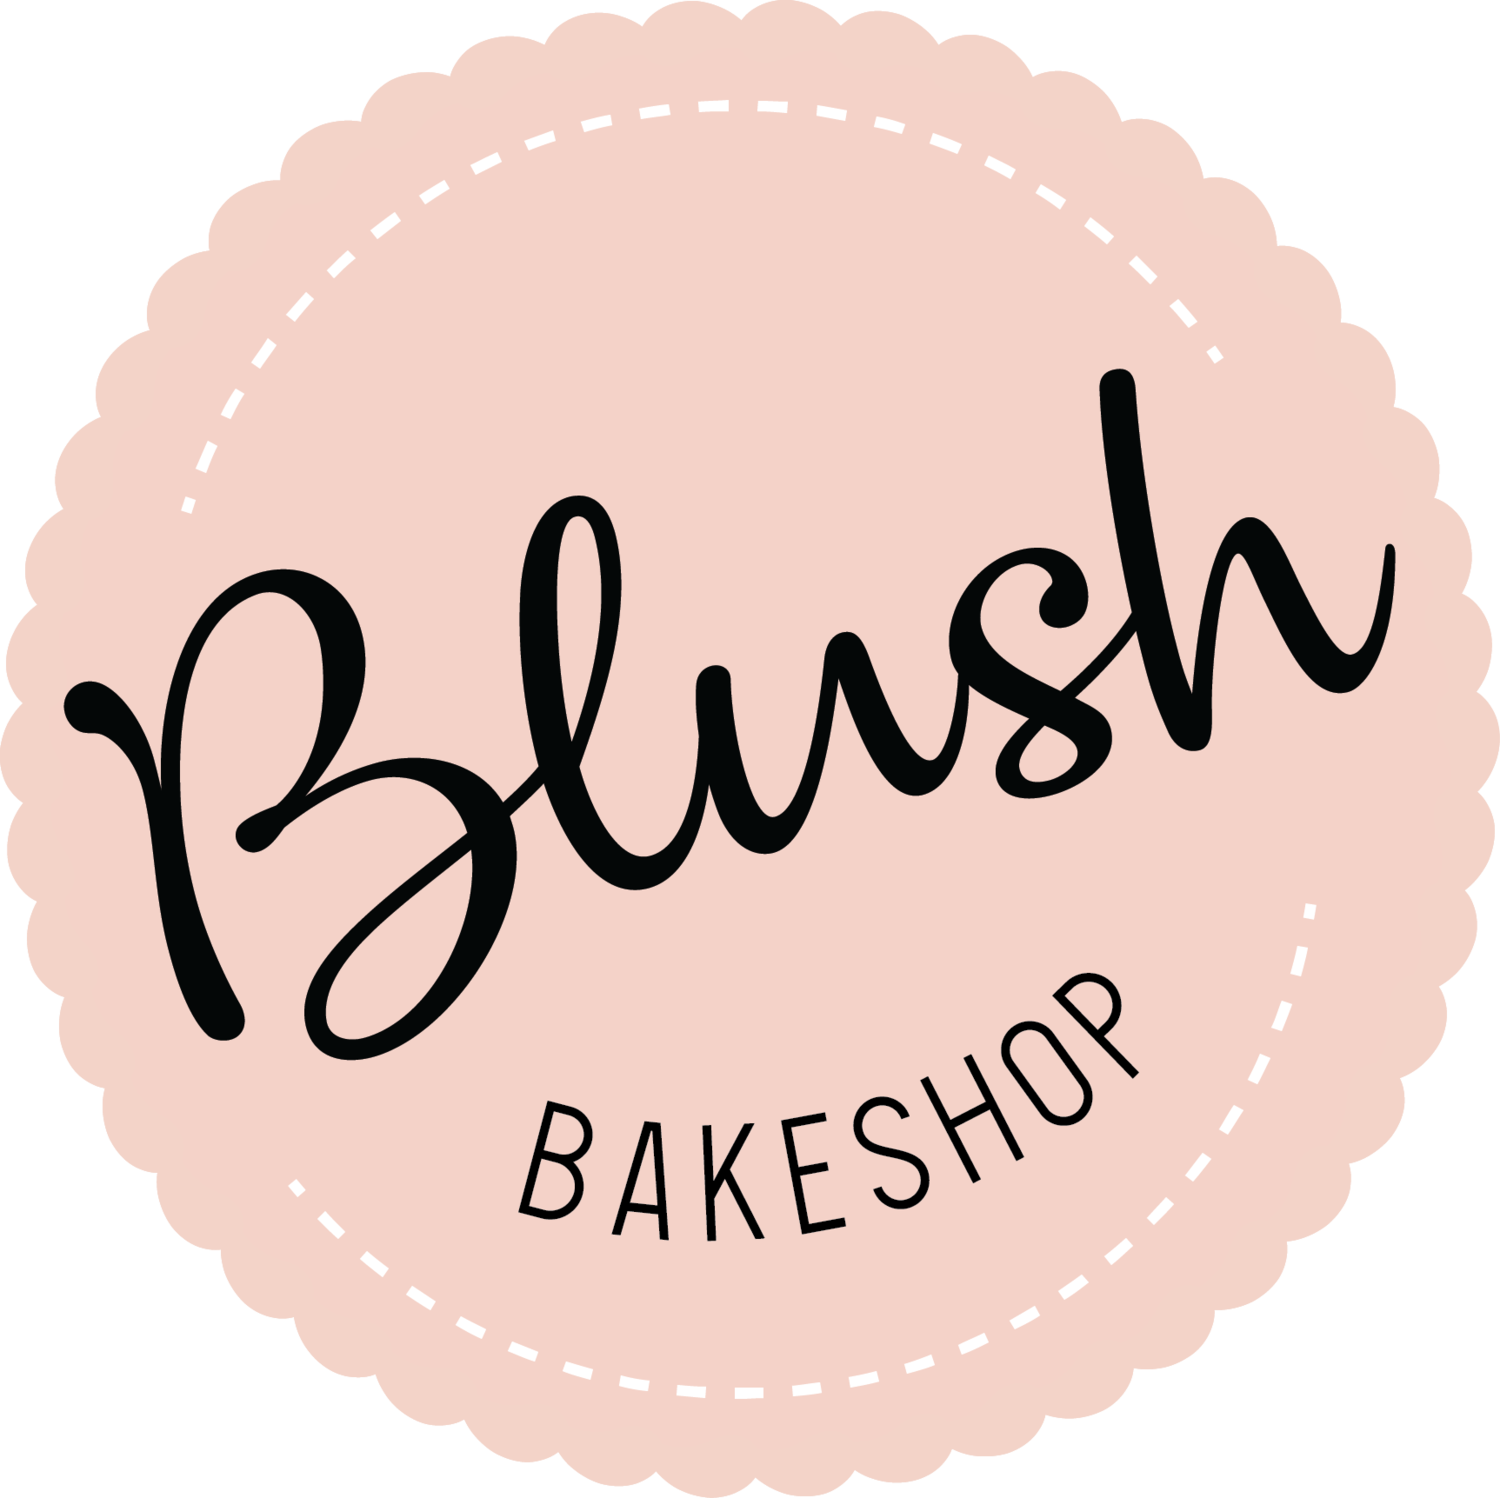 Blush Bakeshop